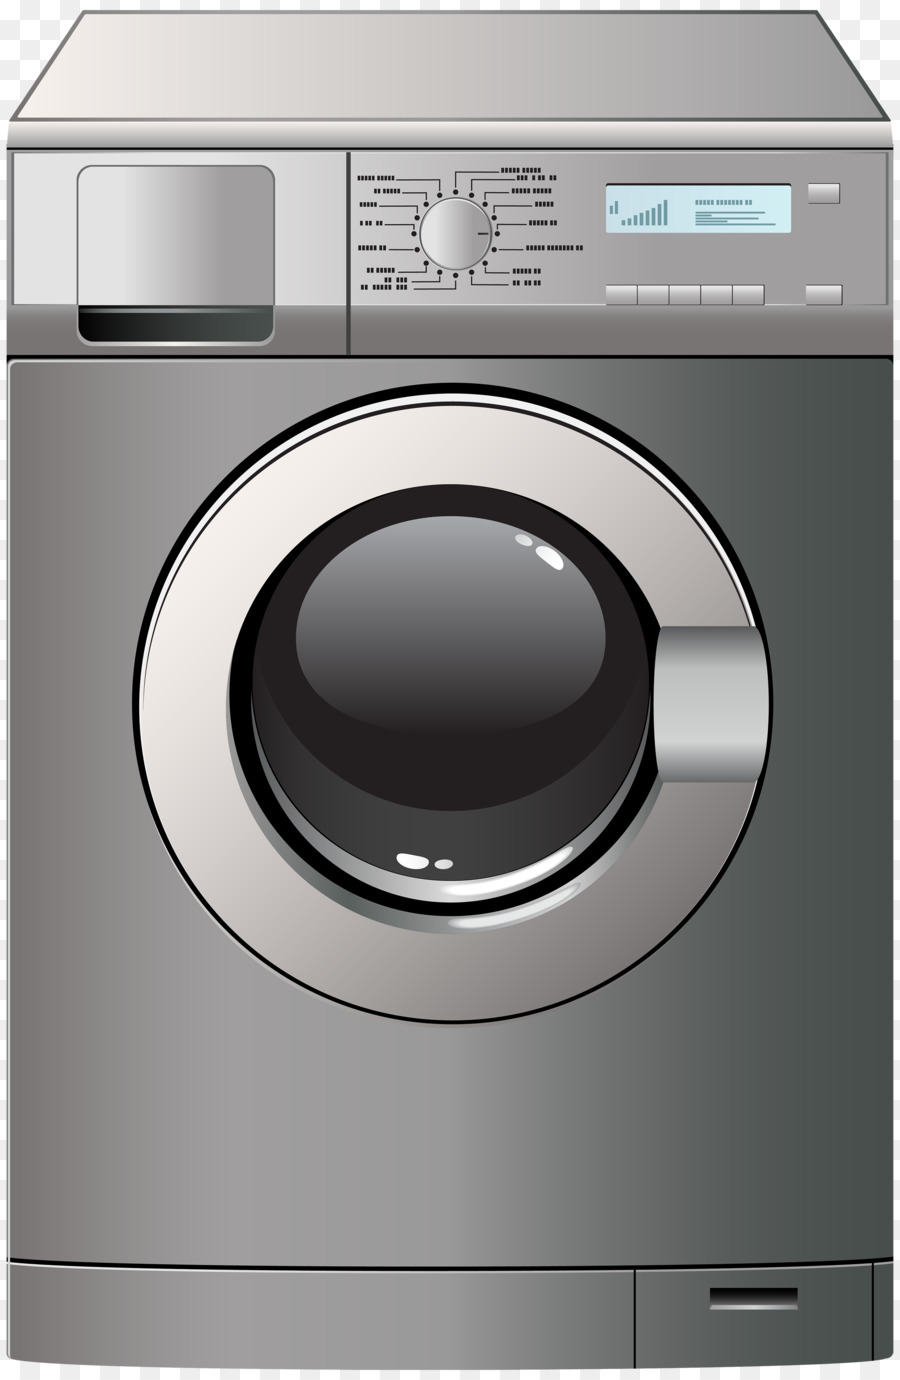 Washing Machine clipart.